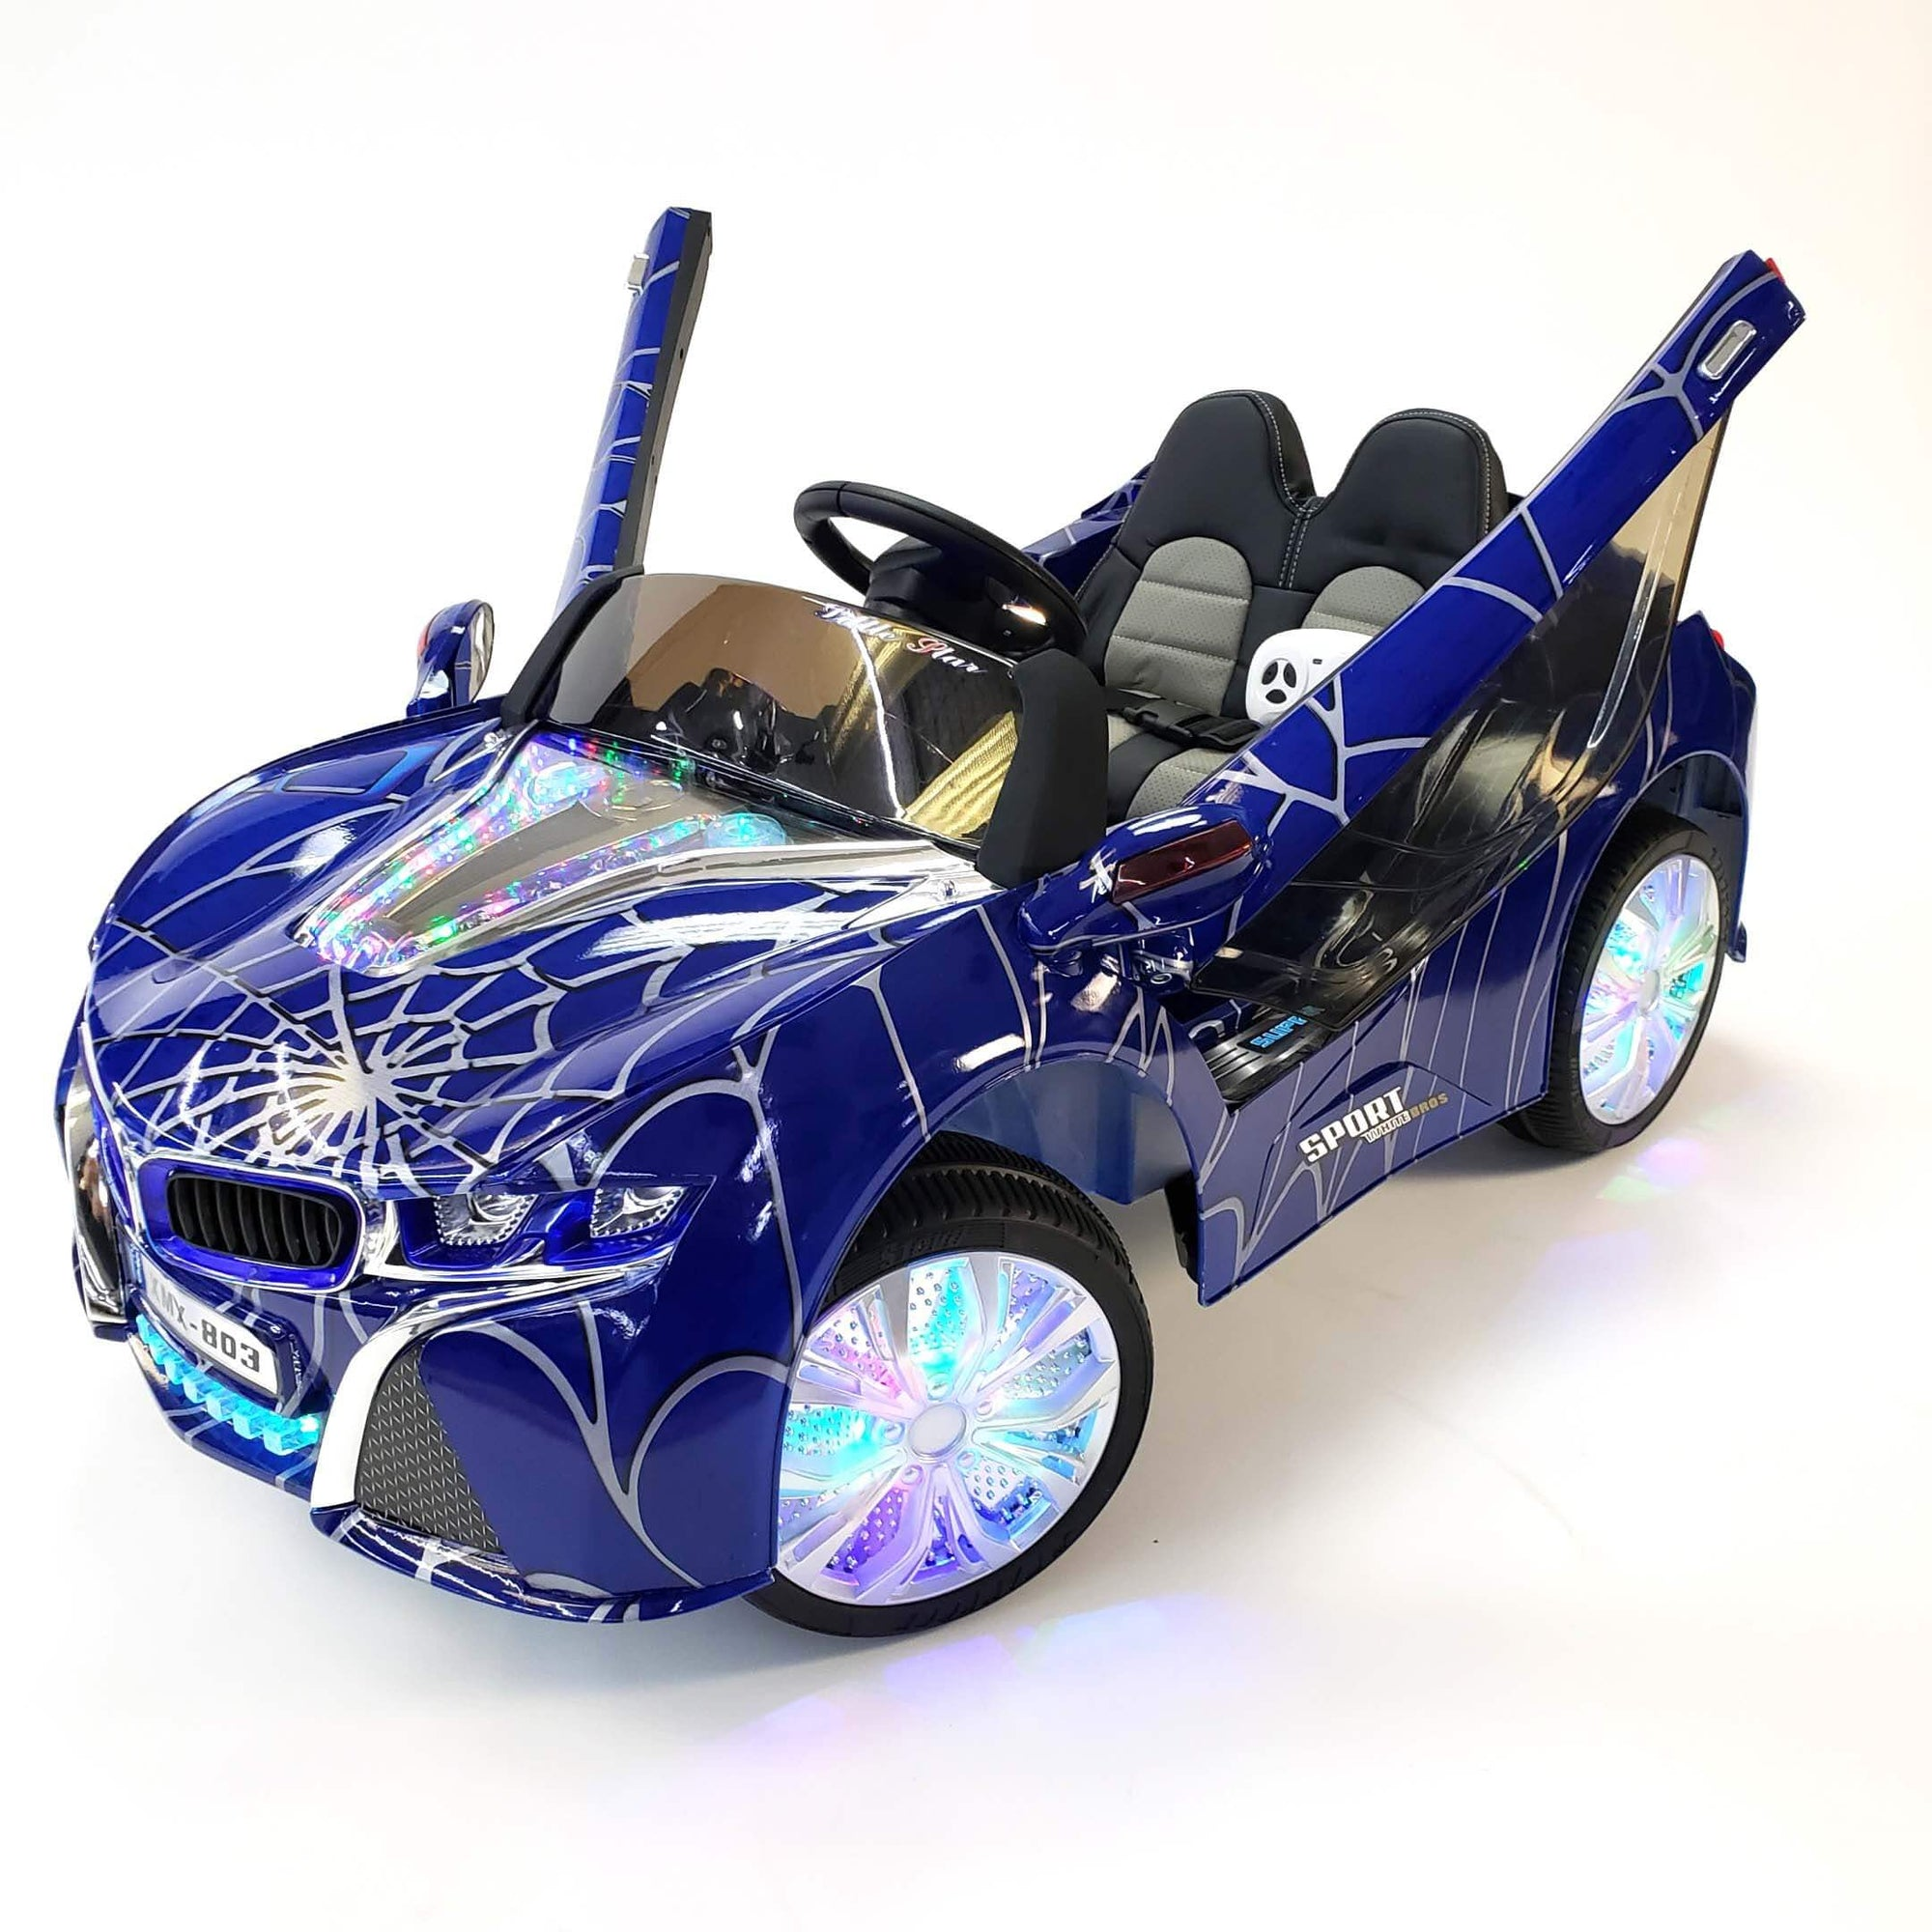 BMW i8 Inspired 1-Seater 12v Ride-on Kids Car in Customized Blue Edition - FREE SHIPPING